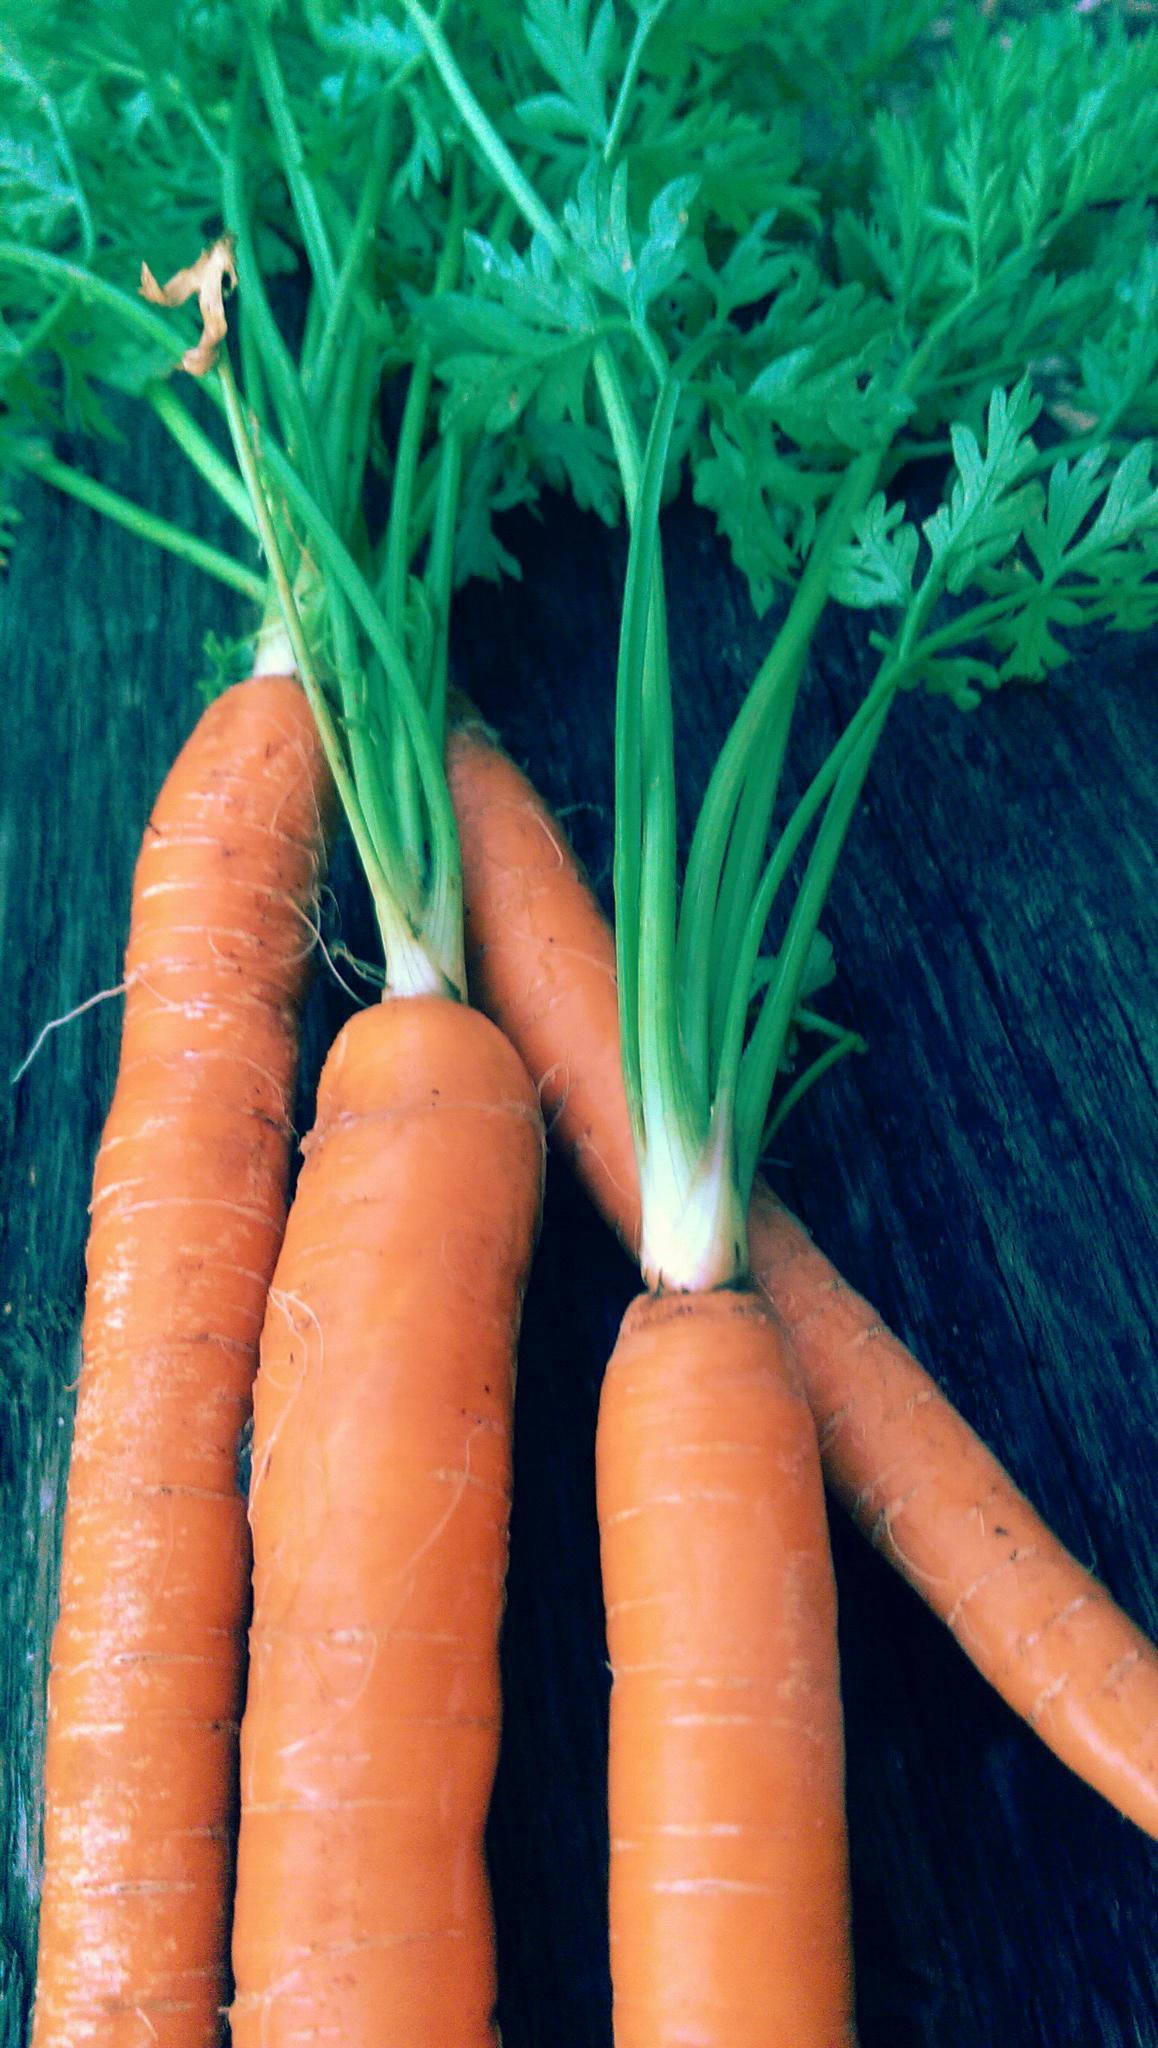 FRESH PICKED CARROTS by roz.keimig